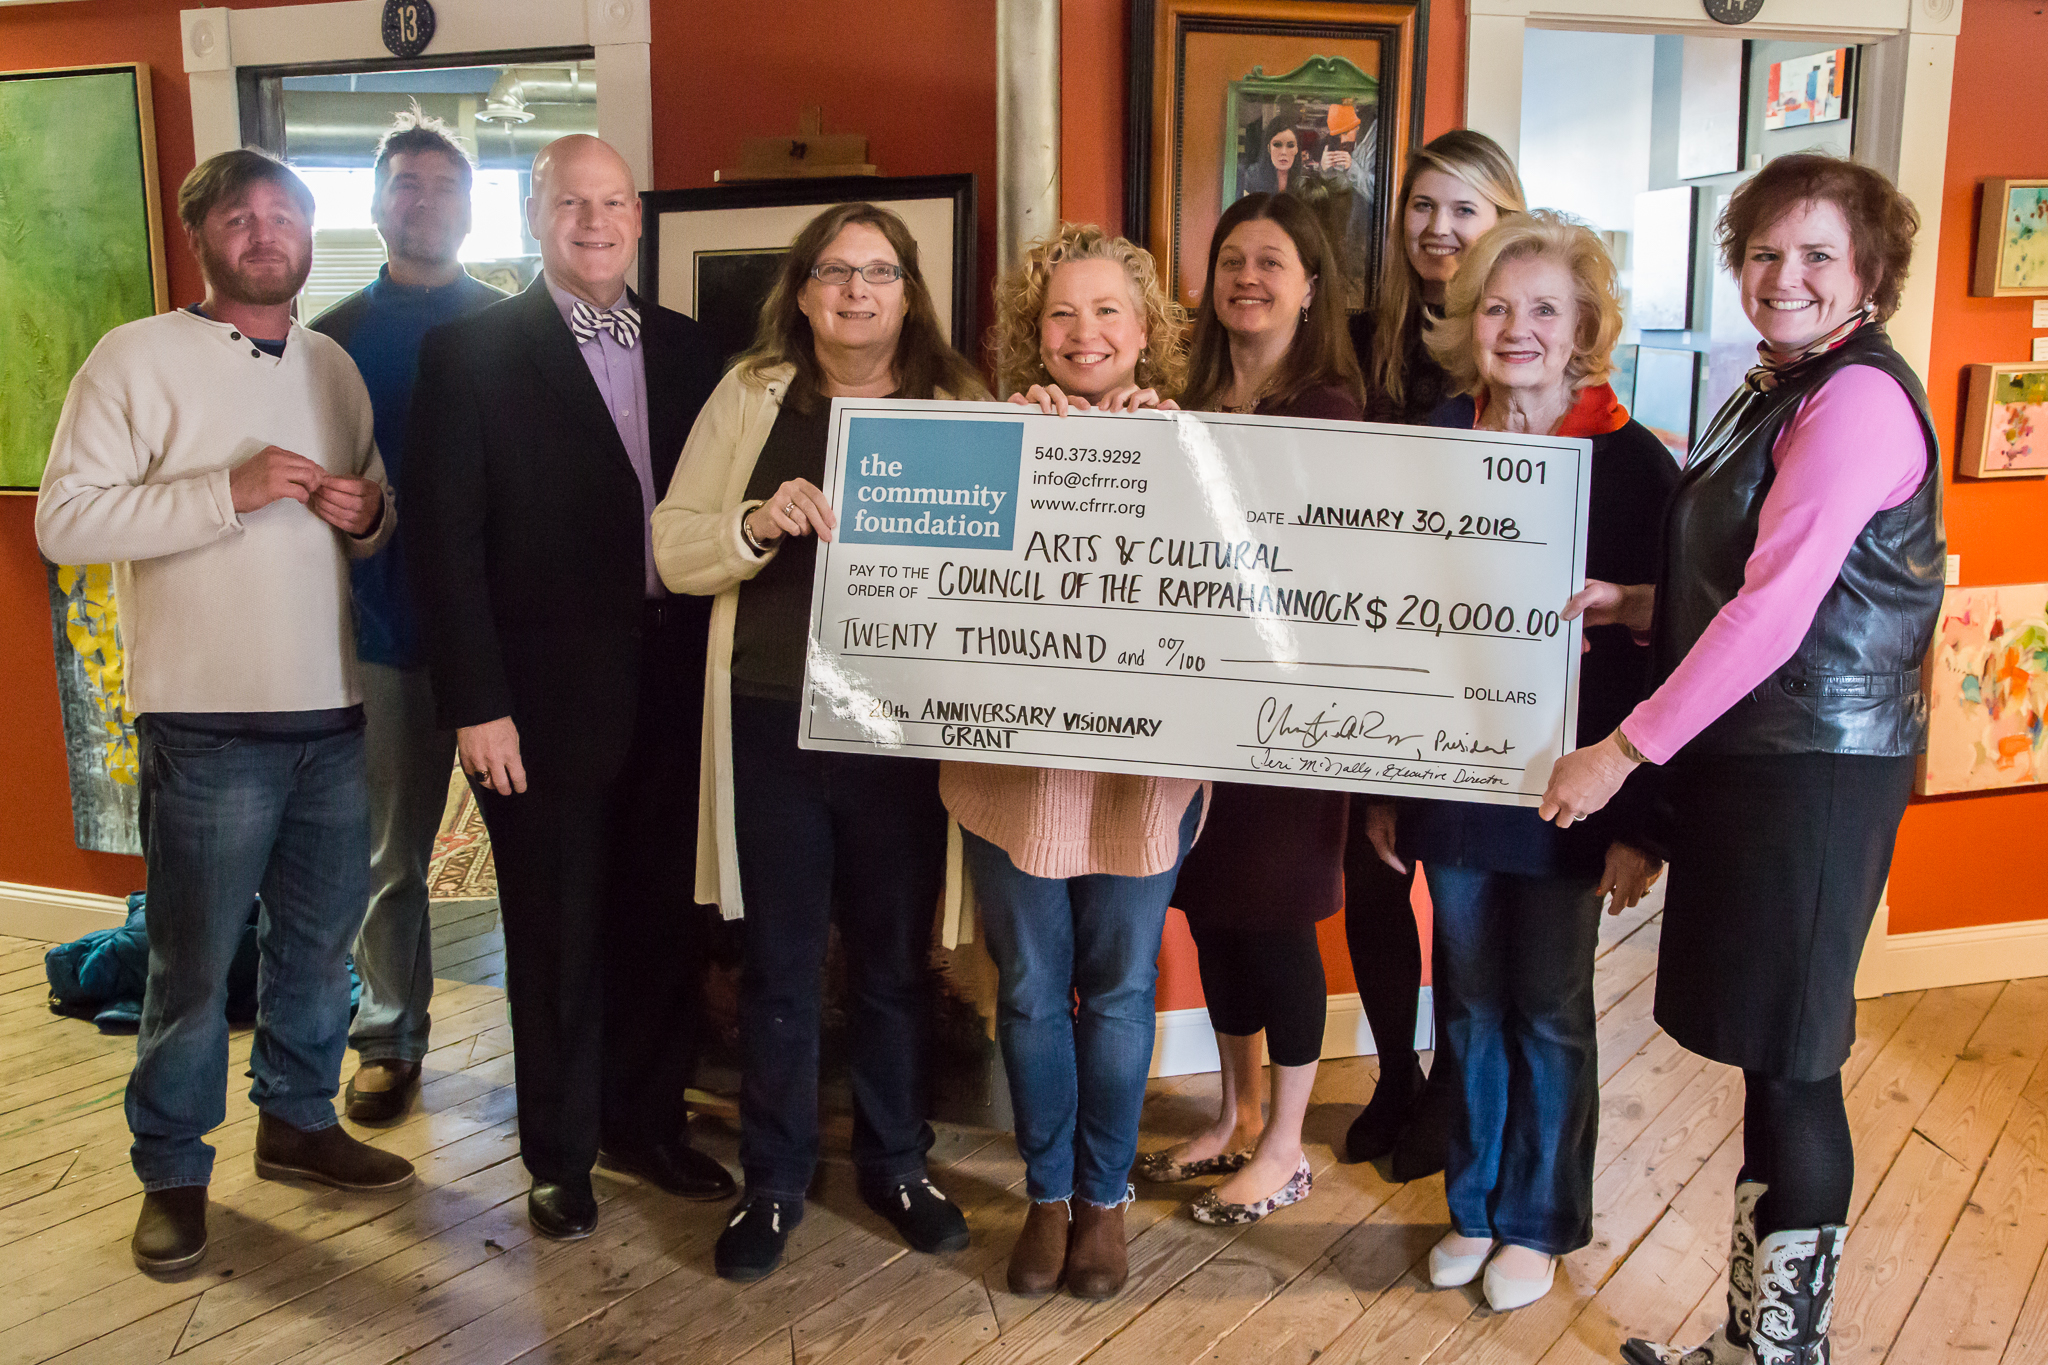 The Community Foundation awards grant to Arts and Cultural Council of the Rappahannock